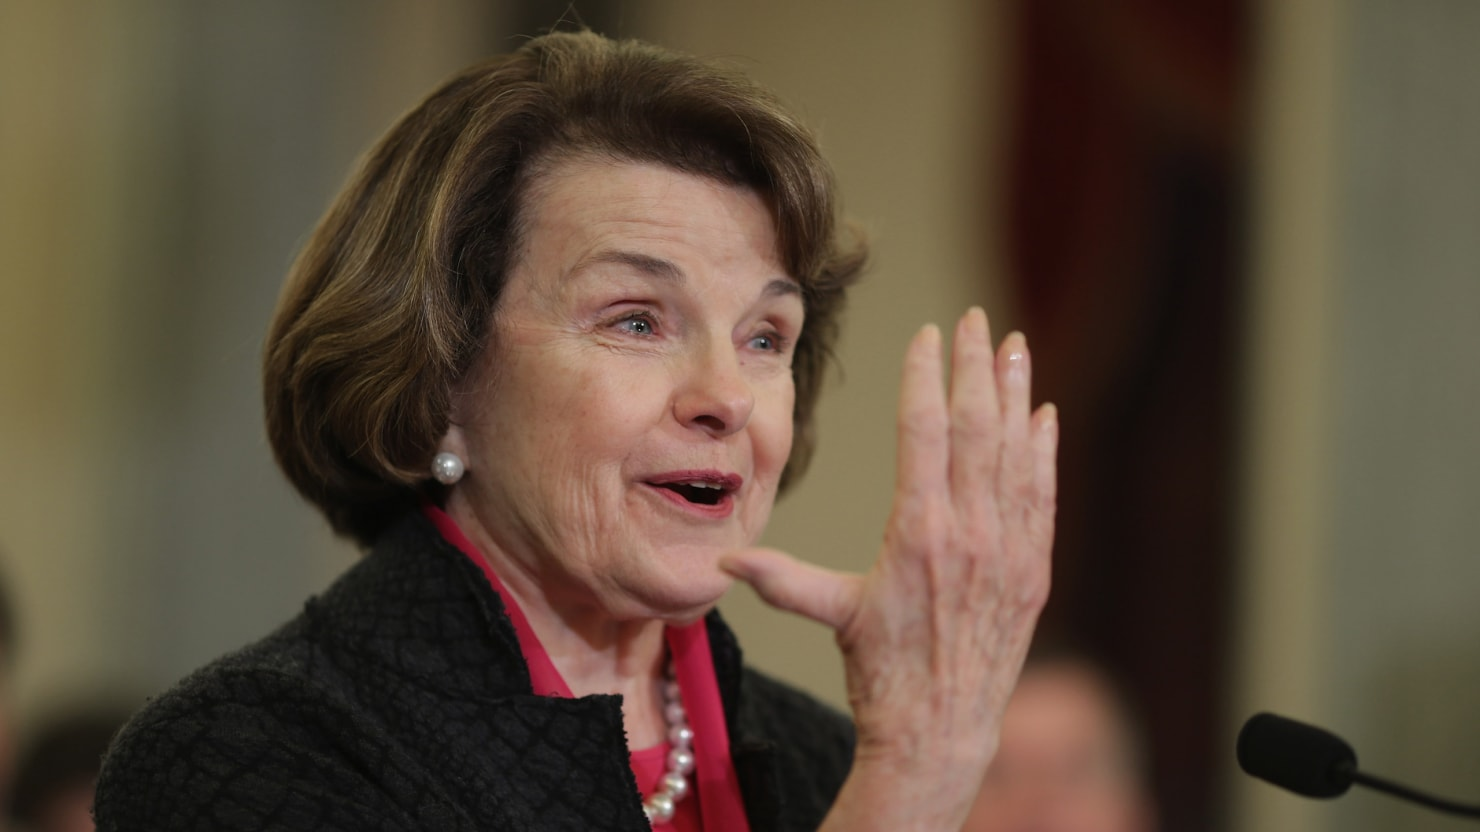 Dianne Feinstein and the Pink Drone, or Was It?